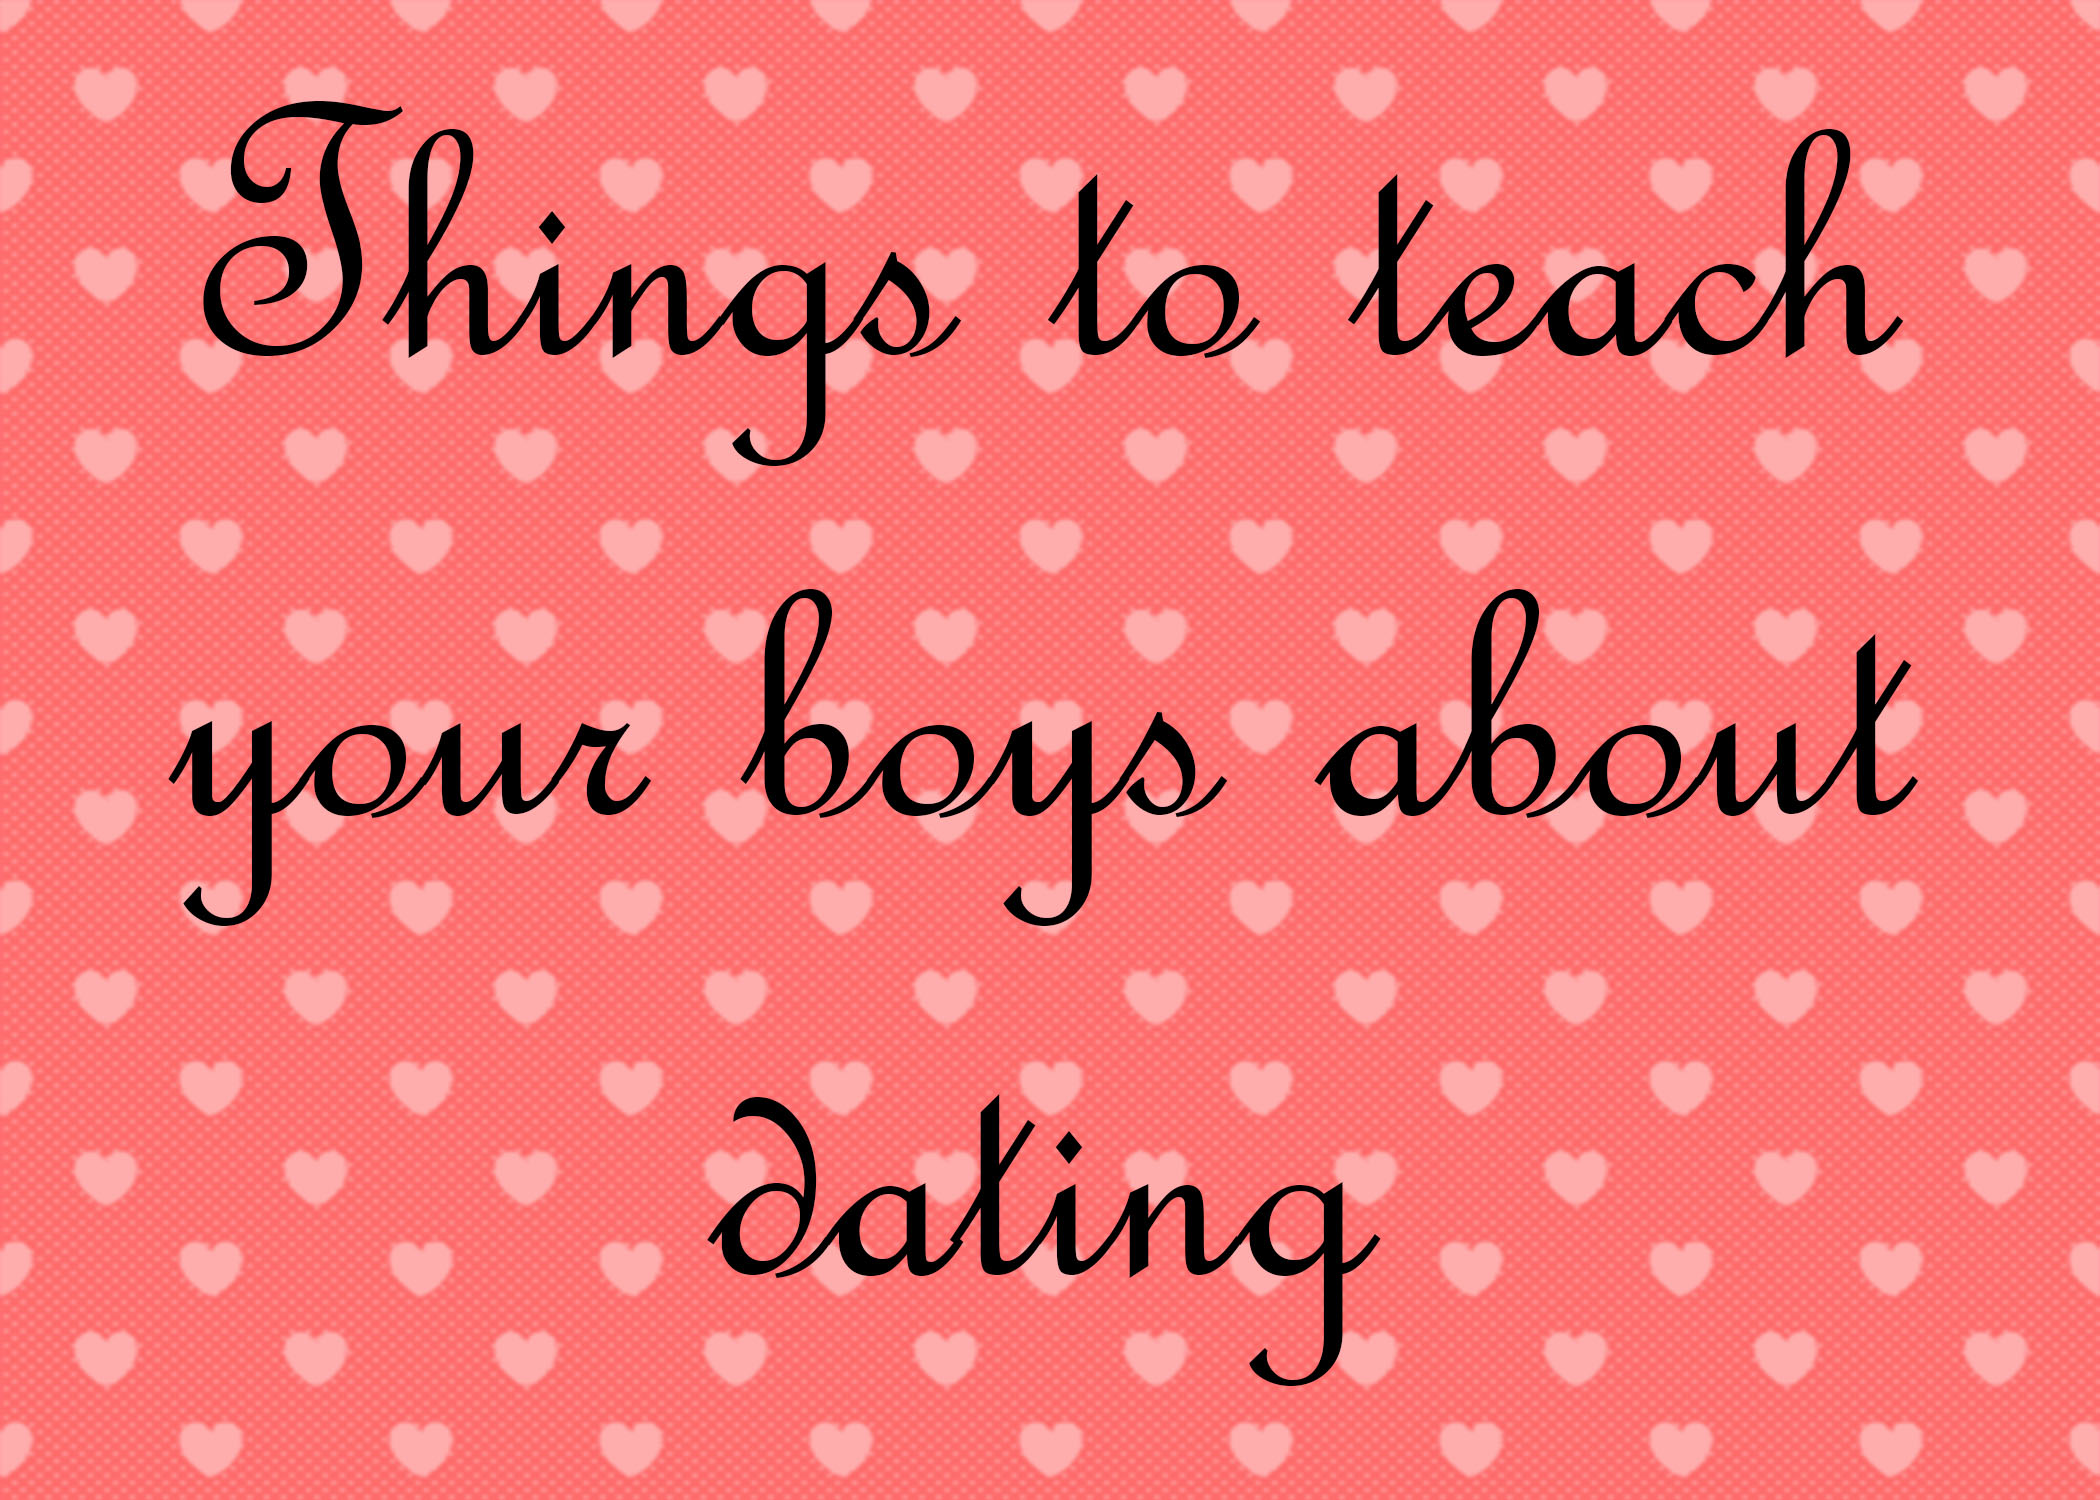 teach your boys abpout dating